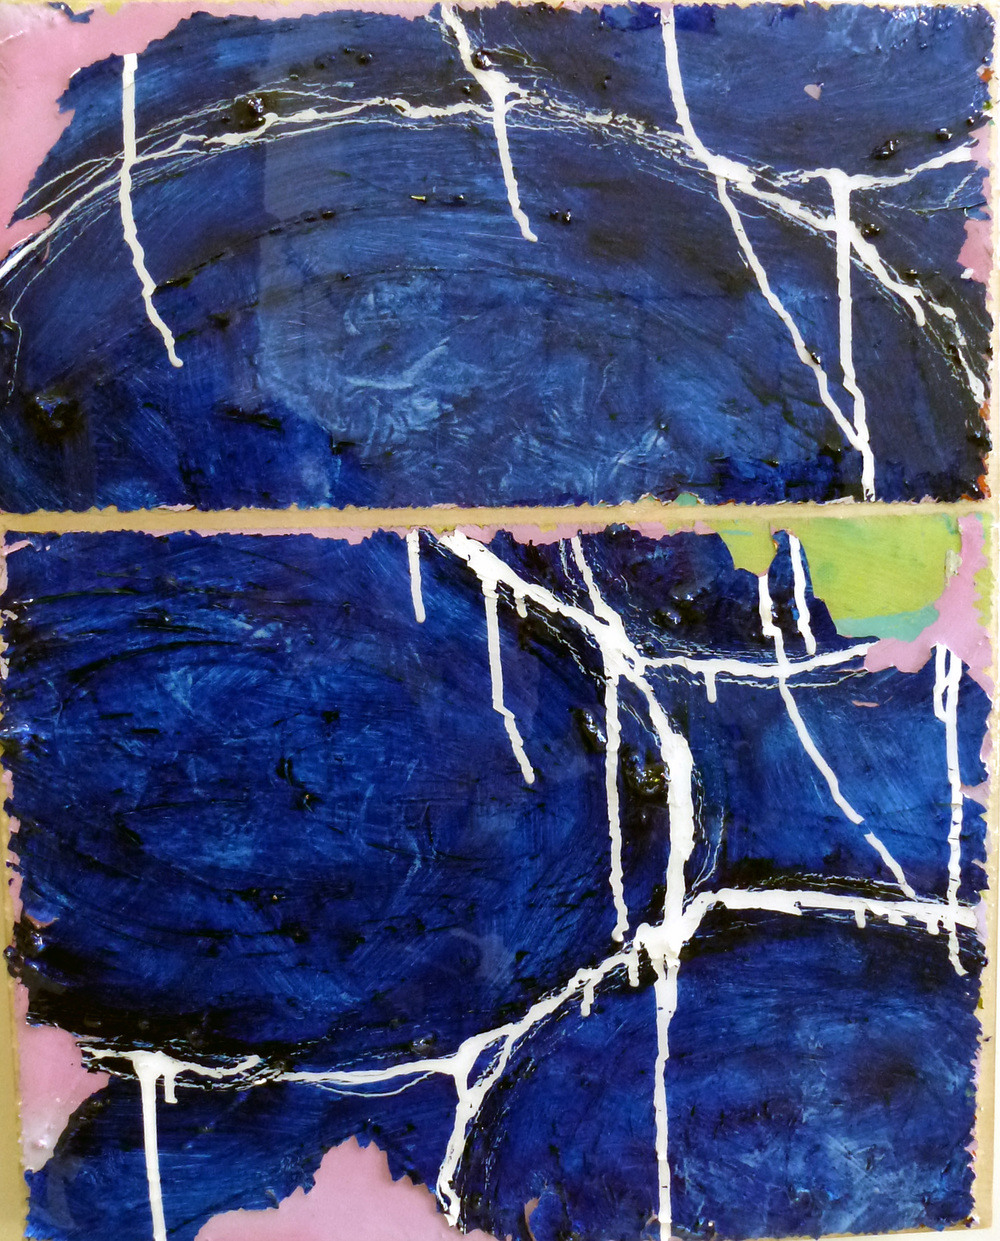 It's Already Too Late Exhibit B   2014 | oil on canvas mounted on panel with epoxy | 16 x 20 | $525